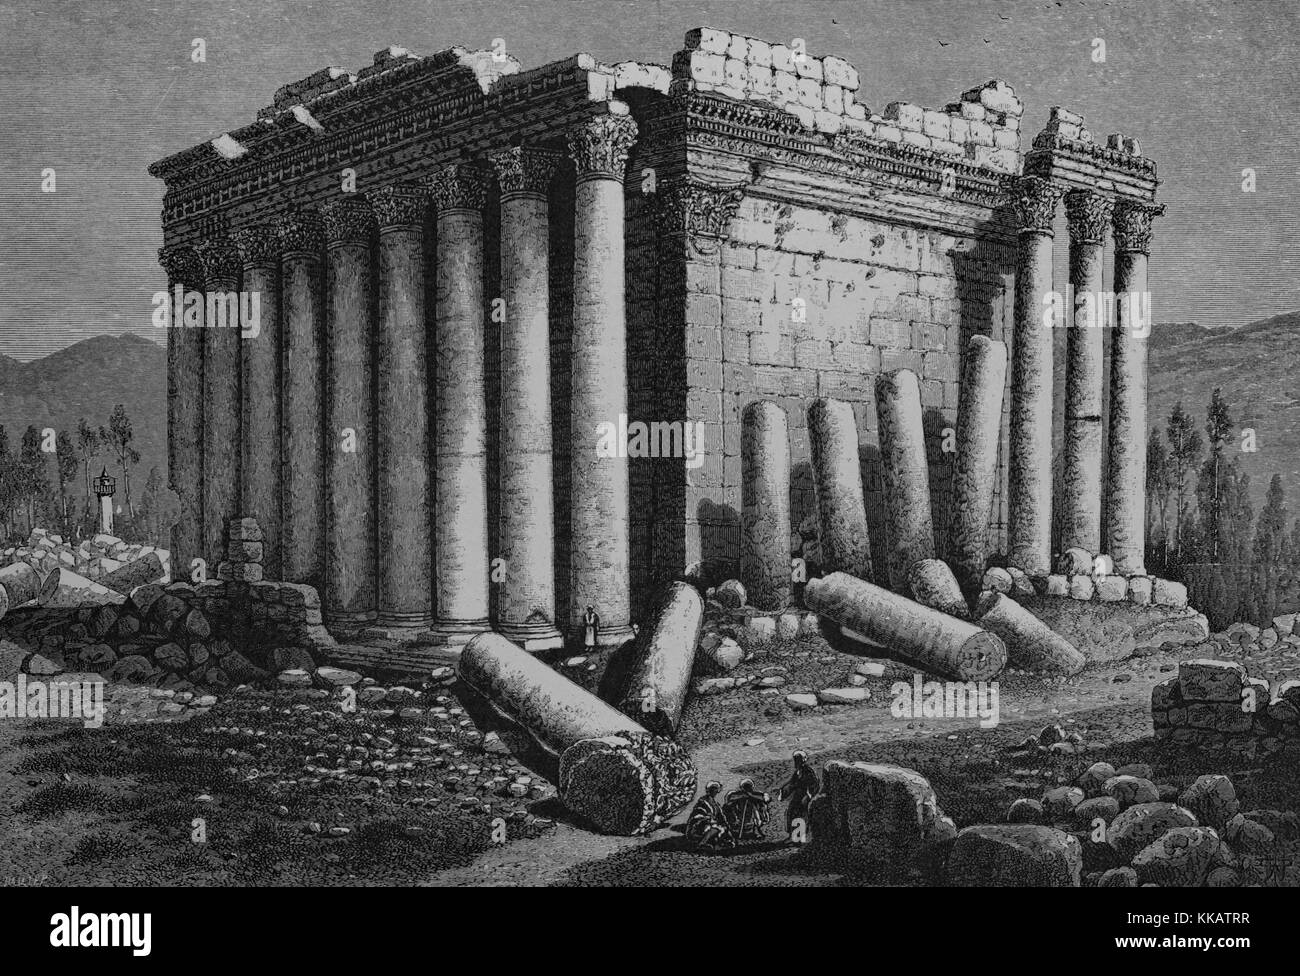 Wood engraving depicting a temple in ruins, broken columns on the ground, captioned 'The Temple of the Sun, - Stock Image